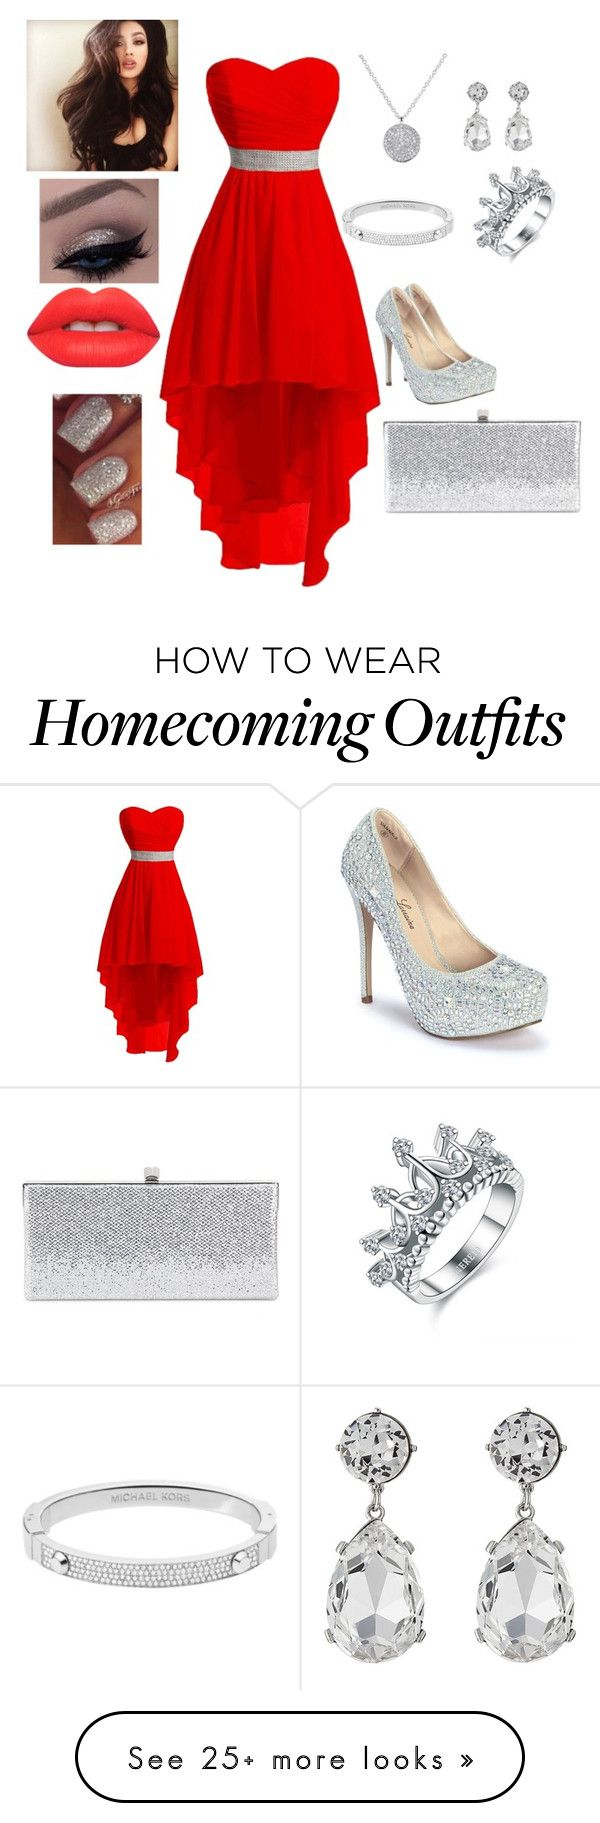 """2016 Prom"" by gillum306 on Polyvore featuring Lauren Lorraine, Kenneth Jay Lane, Michael Kors, Jimmy Choo and Lime Crime"